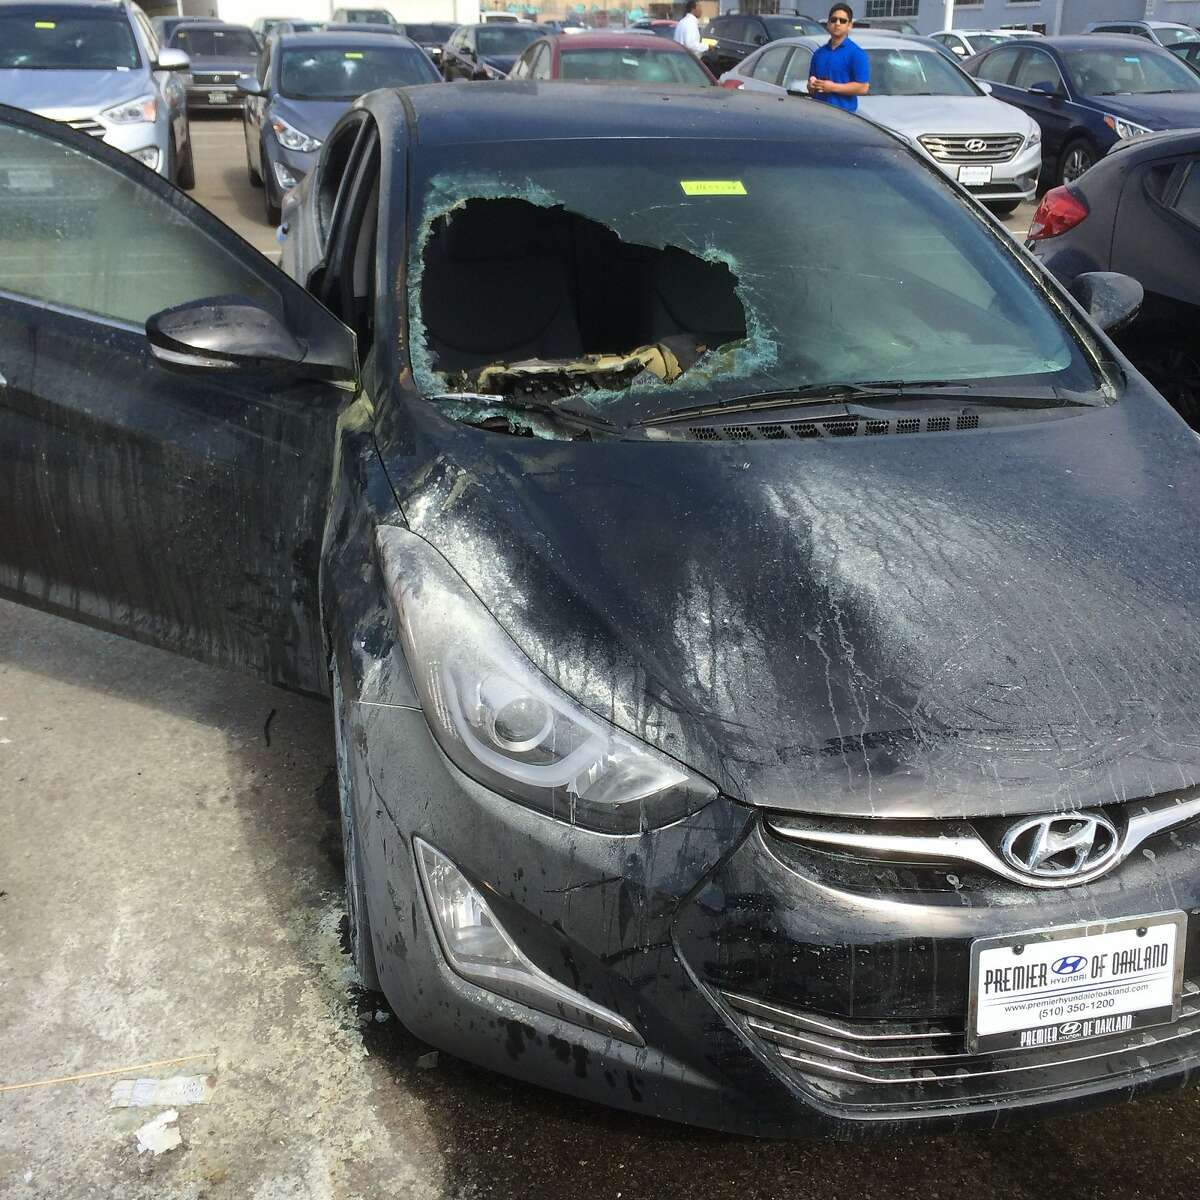 A burned-out Hyundai at a dealership on Broadway in Oakland. Vandals in a May Day march damaged dozens of cars at dealerships on Auto Row on May 1, 2015